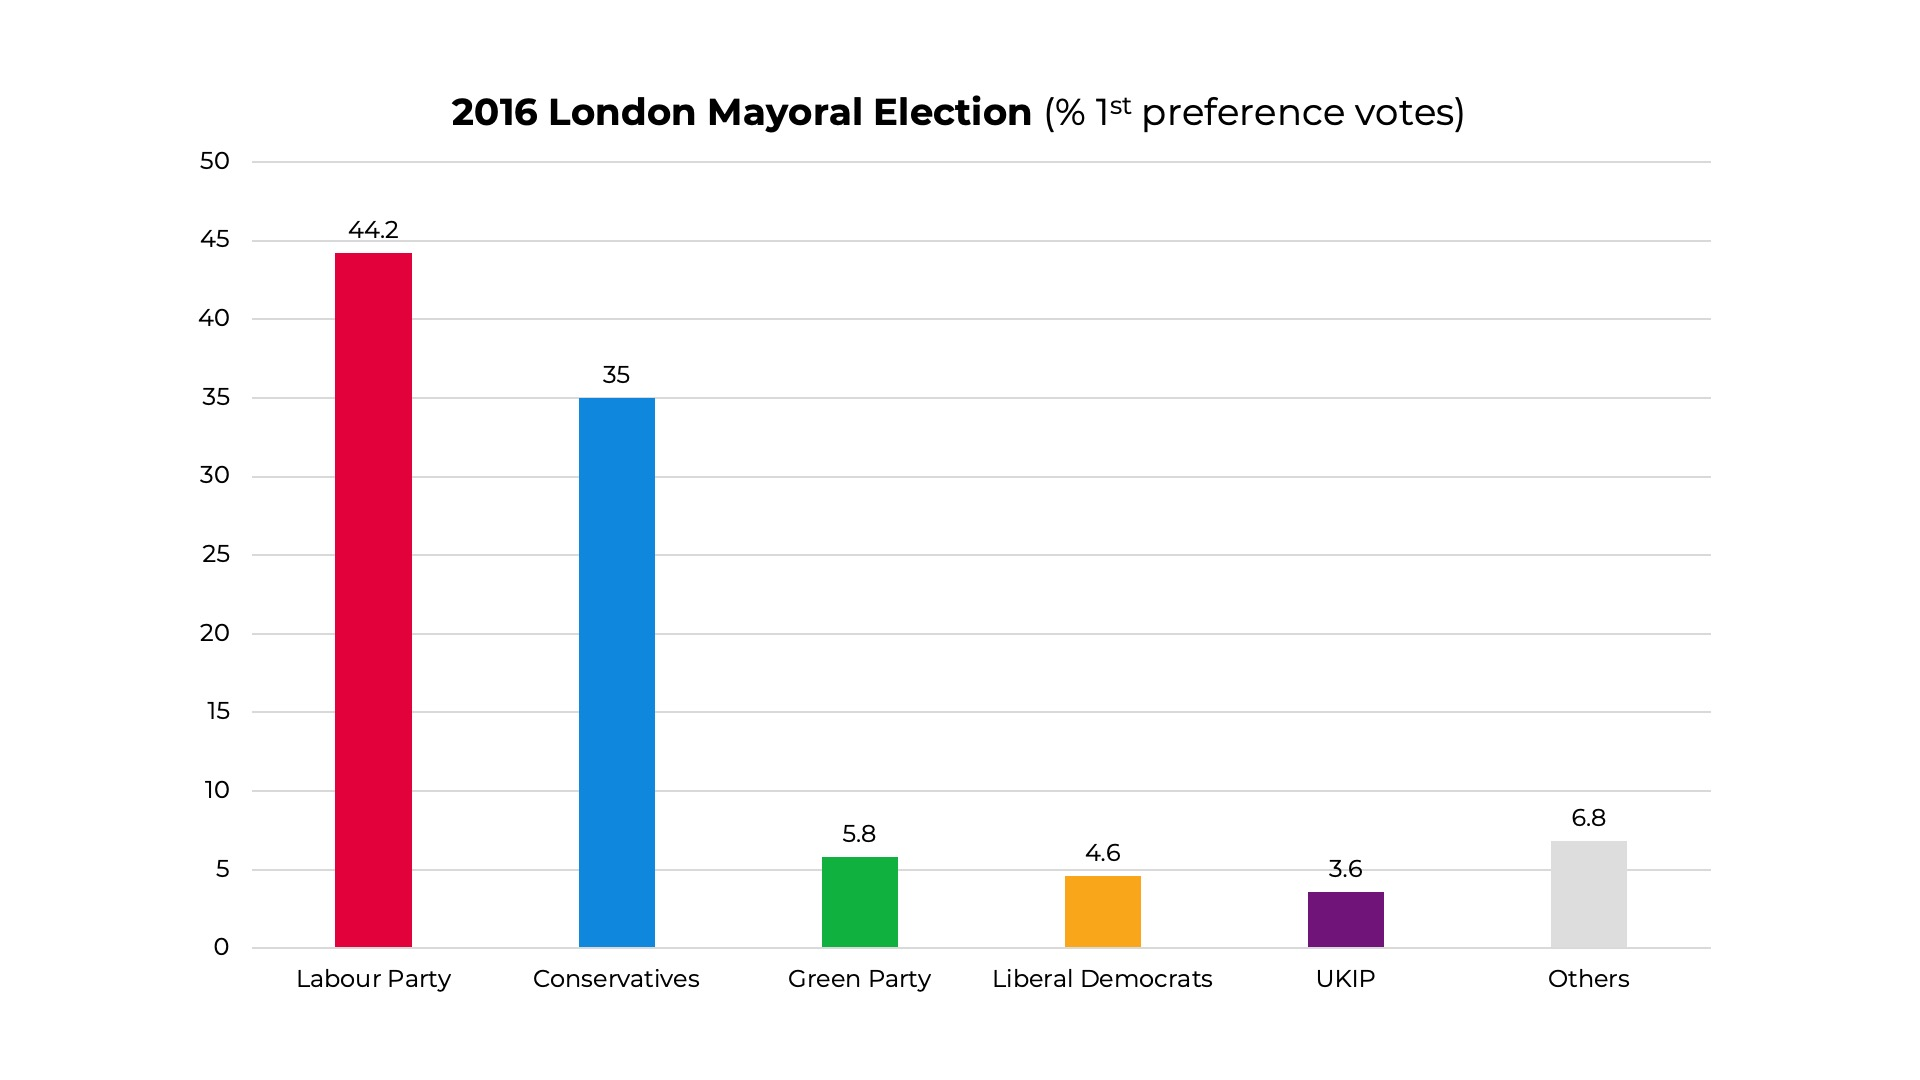 2016 London Mayoral Election results